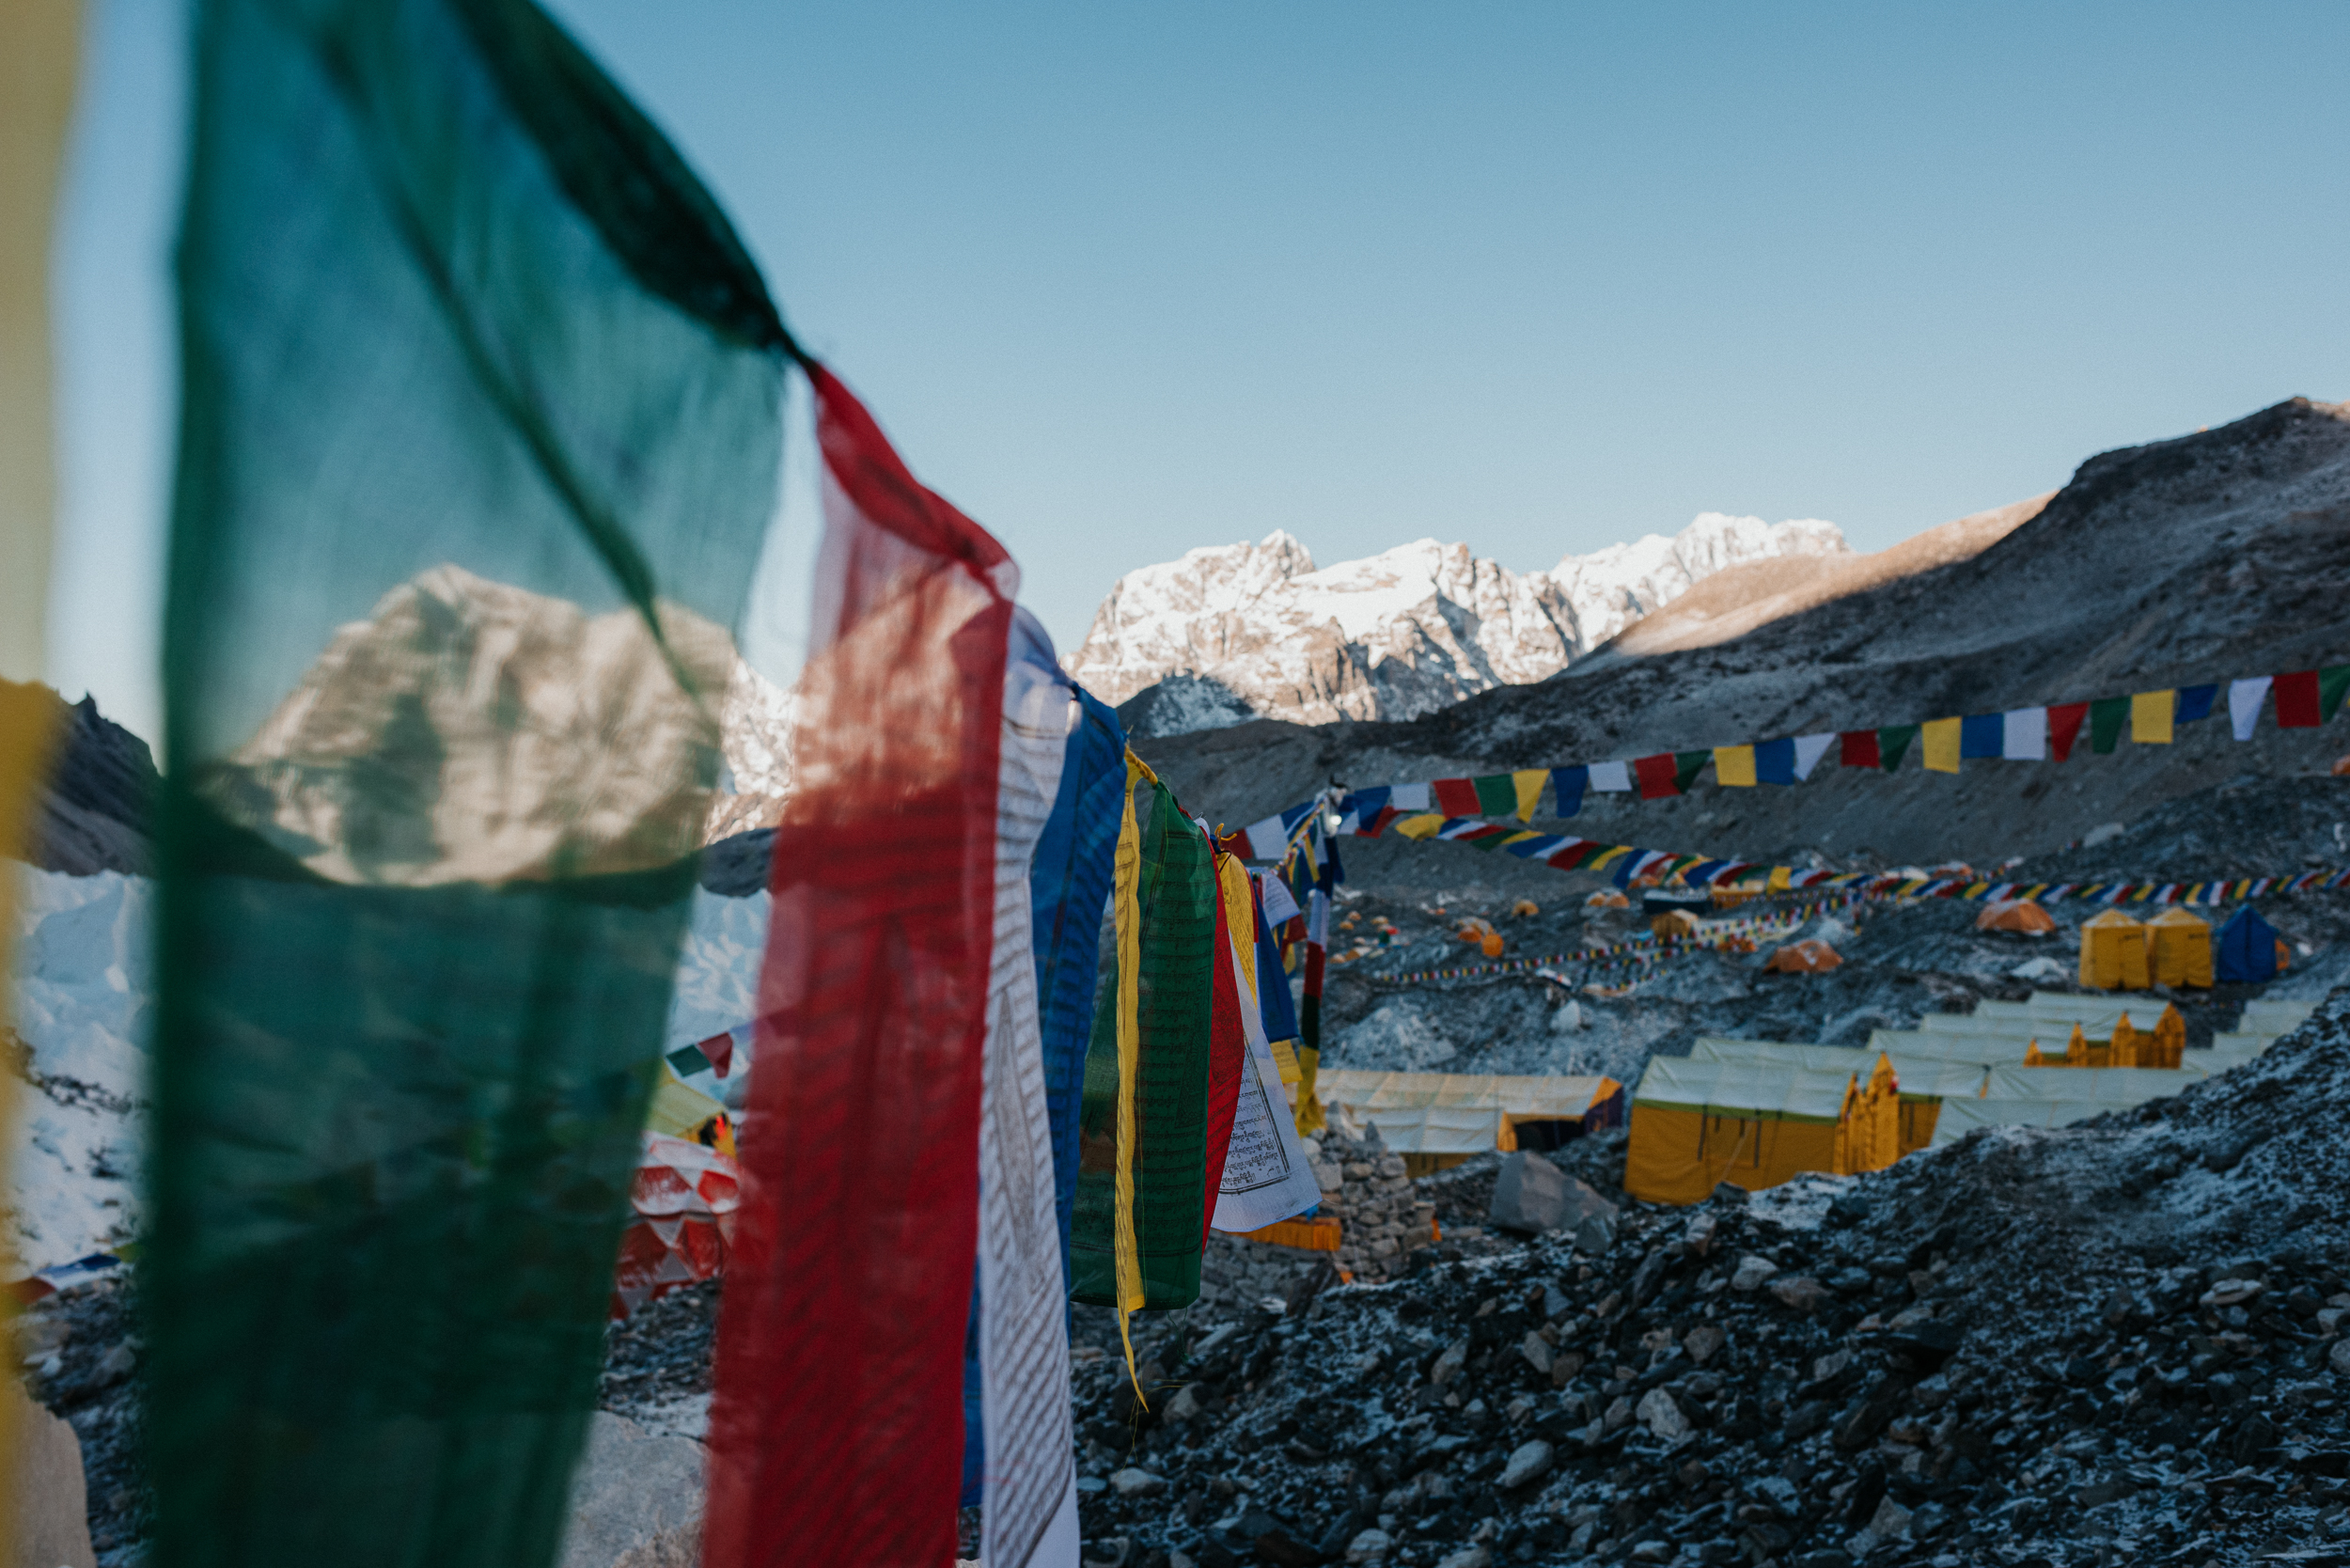 Nepal_EverestBaseCamp_2019_TaraShupe_Photography_DSC_4357.jpg